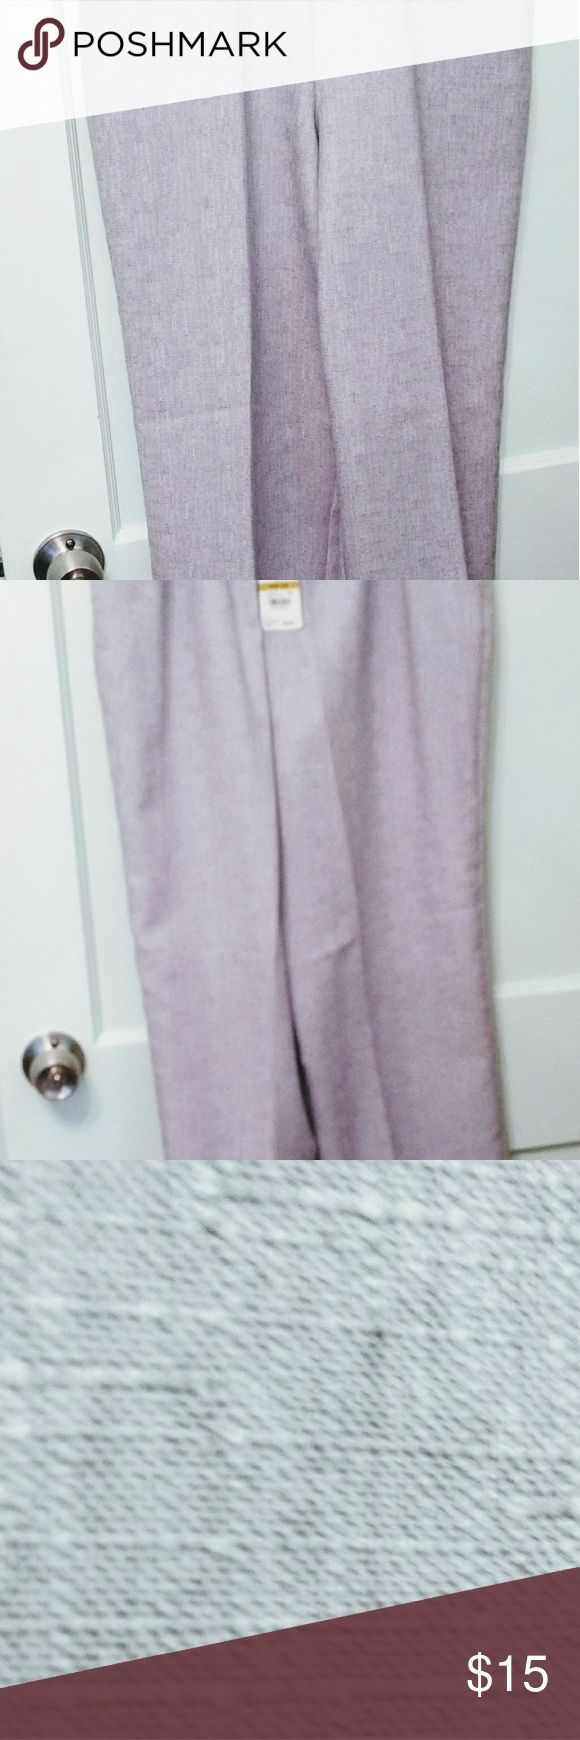 Alfred Dunner light grey flat front pants NWT These pants have a beautifully textured, light weight fabric. They have a flat front for a smooth look. Side pockets. Original tags intact. Care instructions: wash cold, gentle cycle; tumble dry cool. Iron on low, if needed. These pants are a great addition to your spring & summer wardrobe. See my other listings for go with blouses. Alfred Dunner Pants